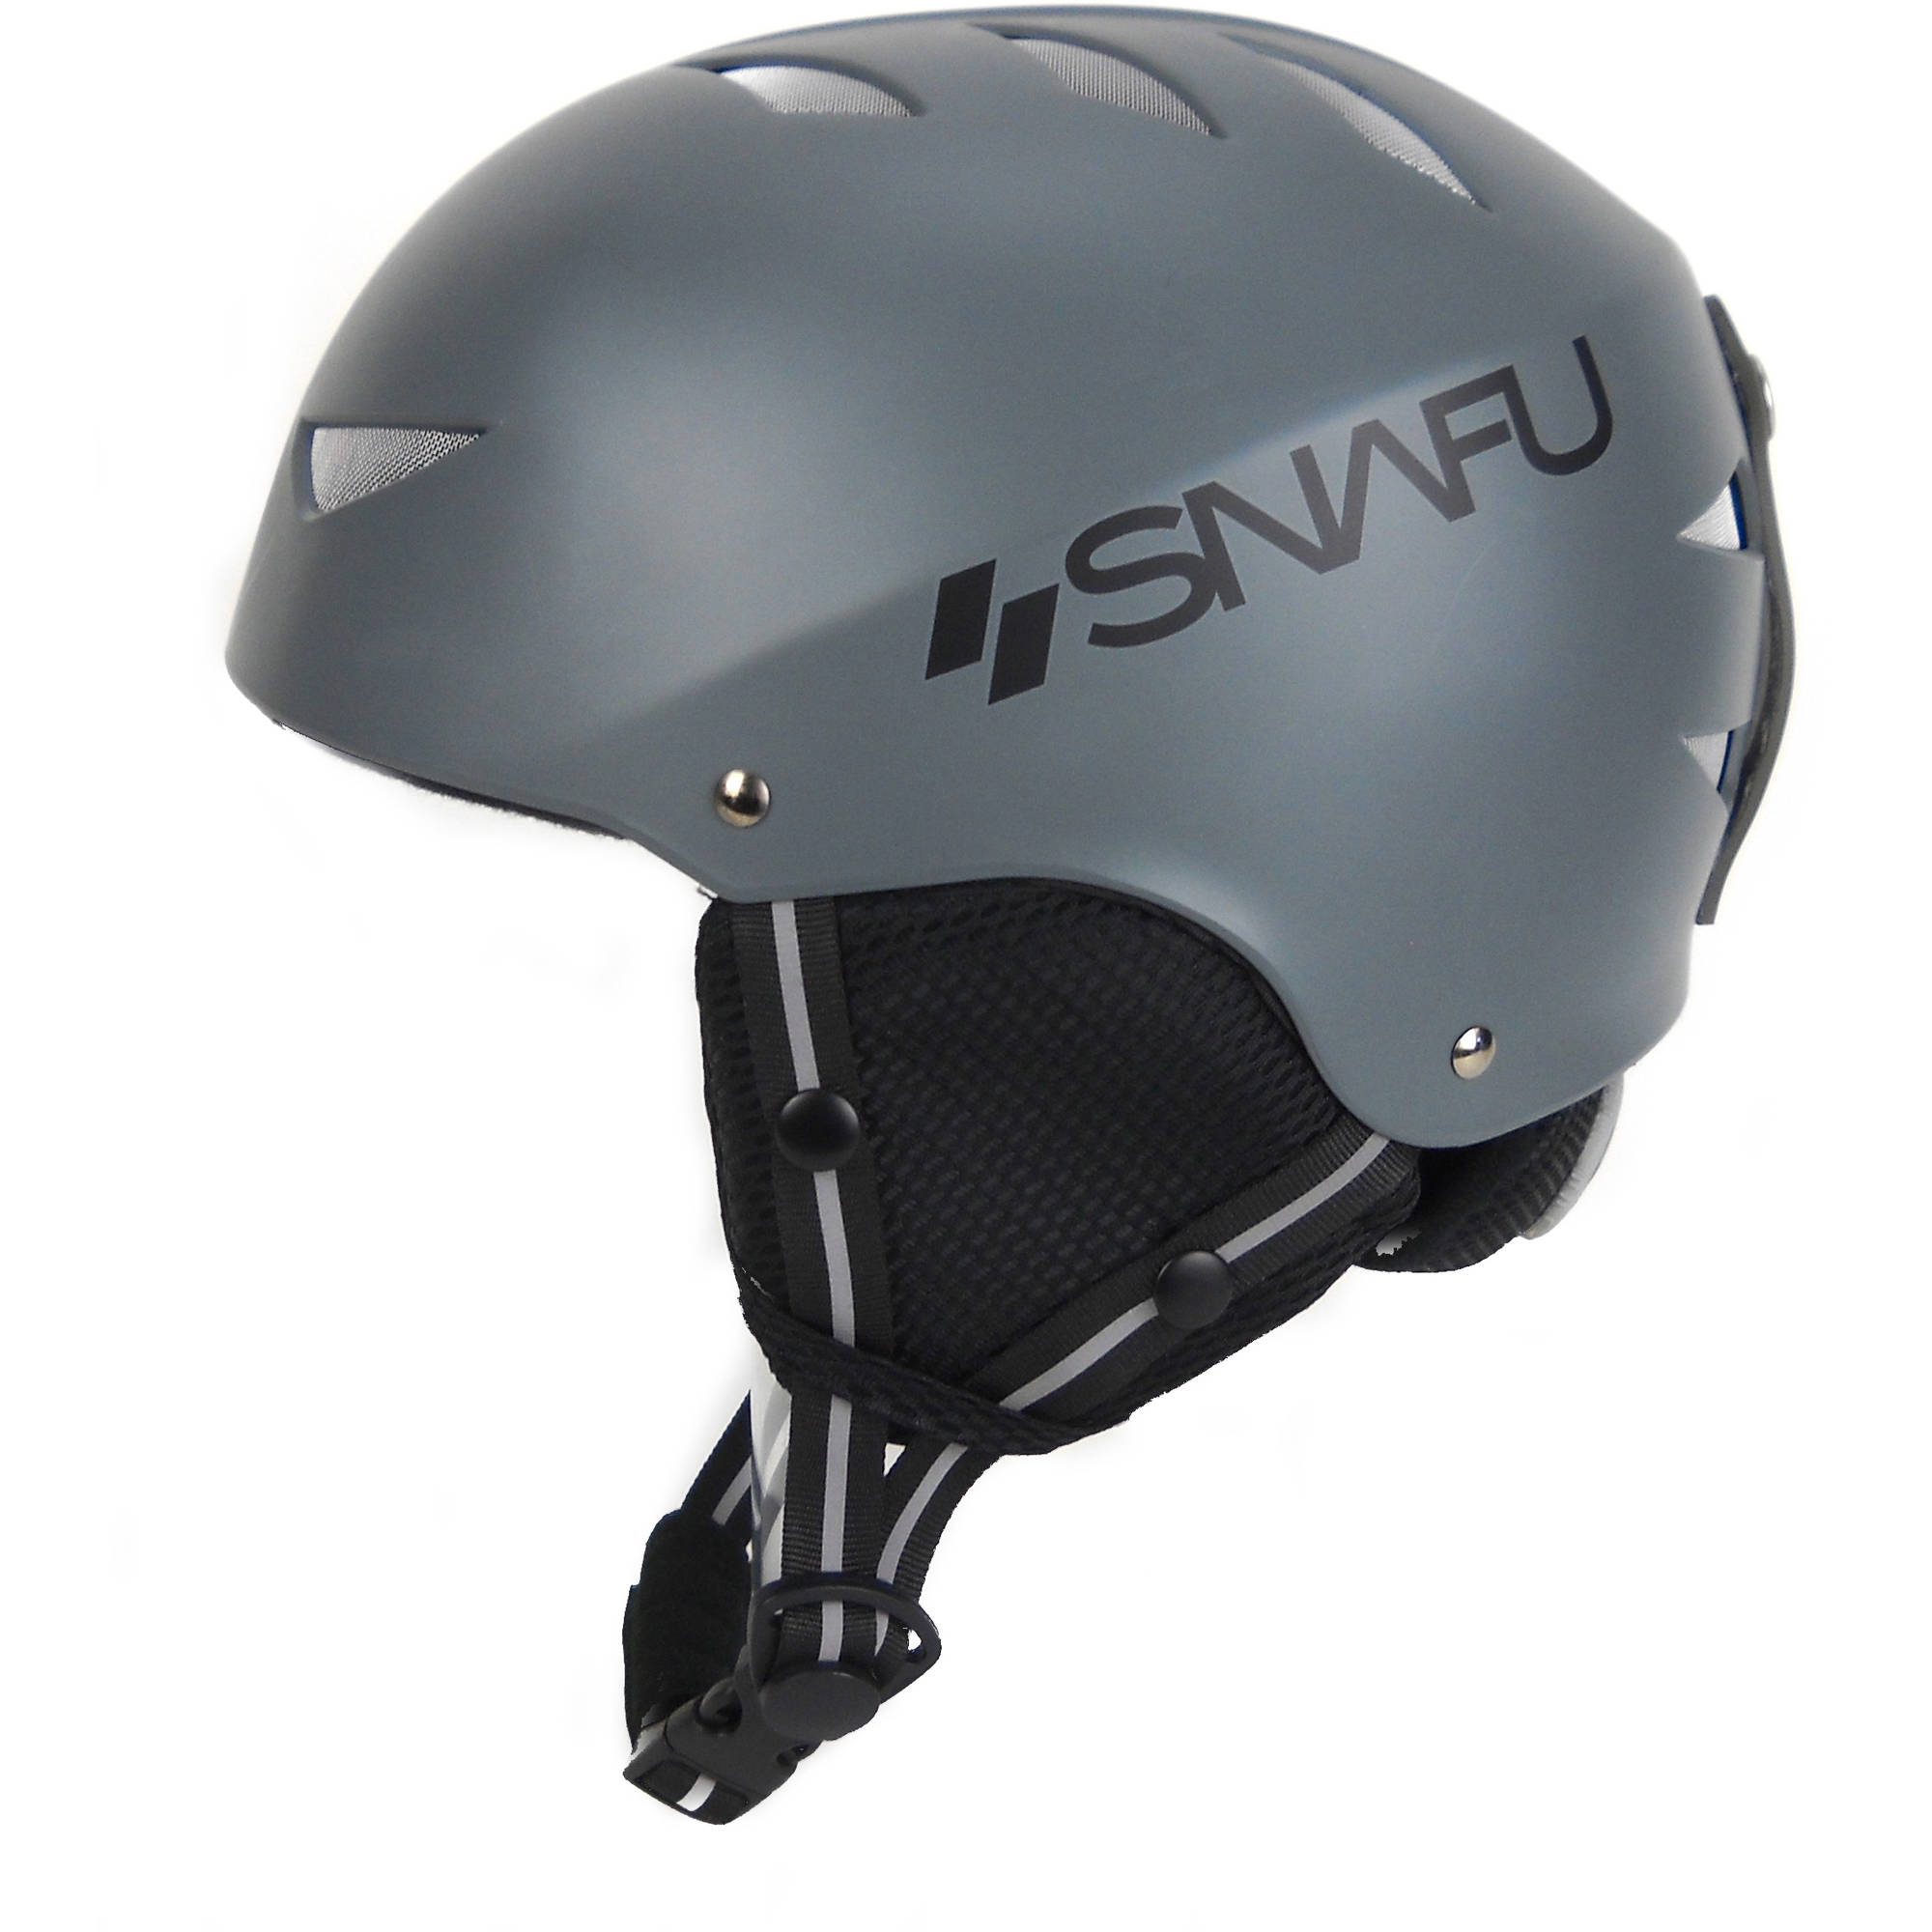 SNAFU Winter Sports Helmet, Matte Gray, L by